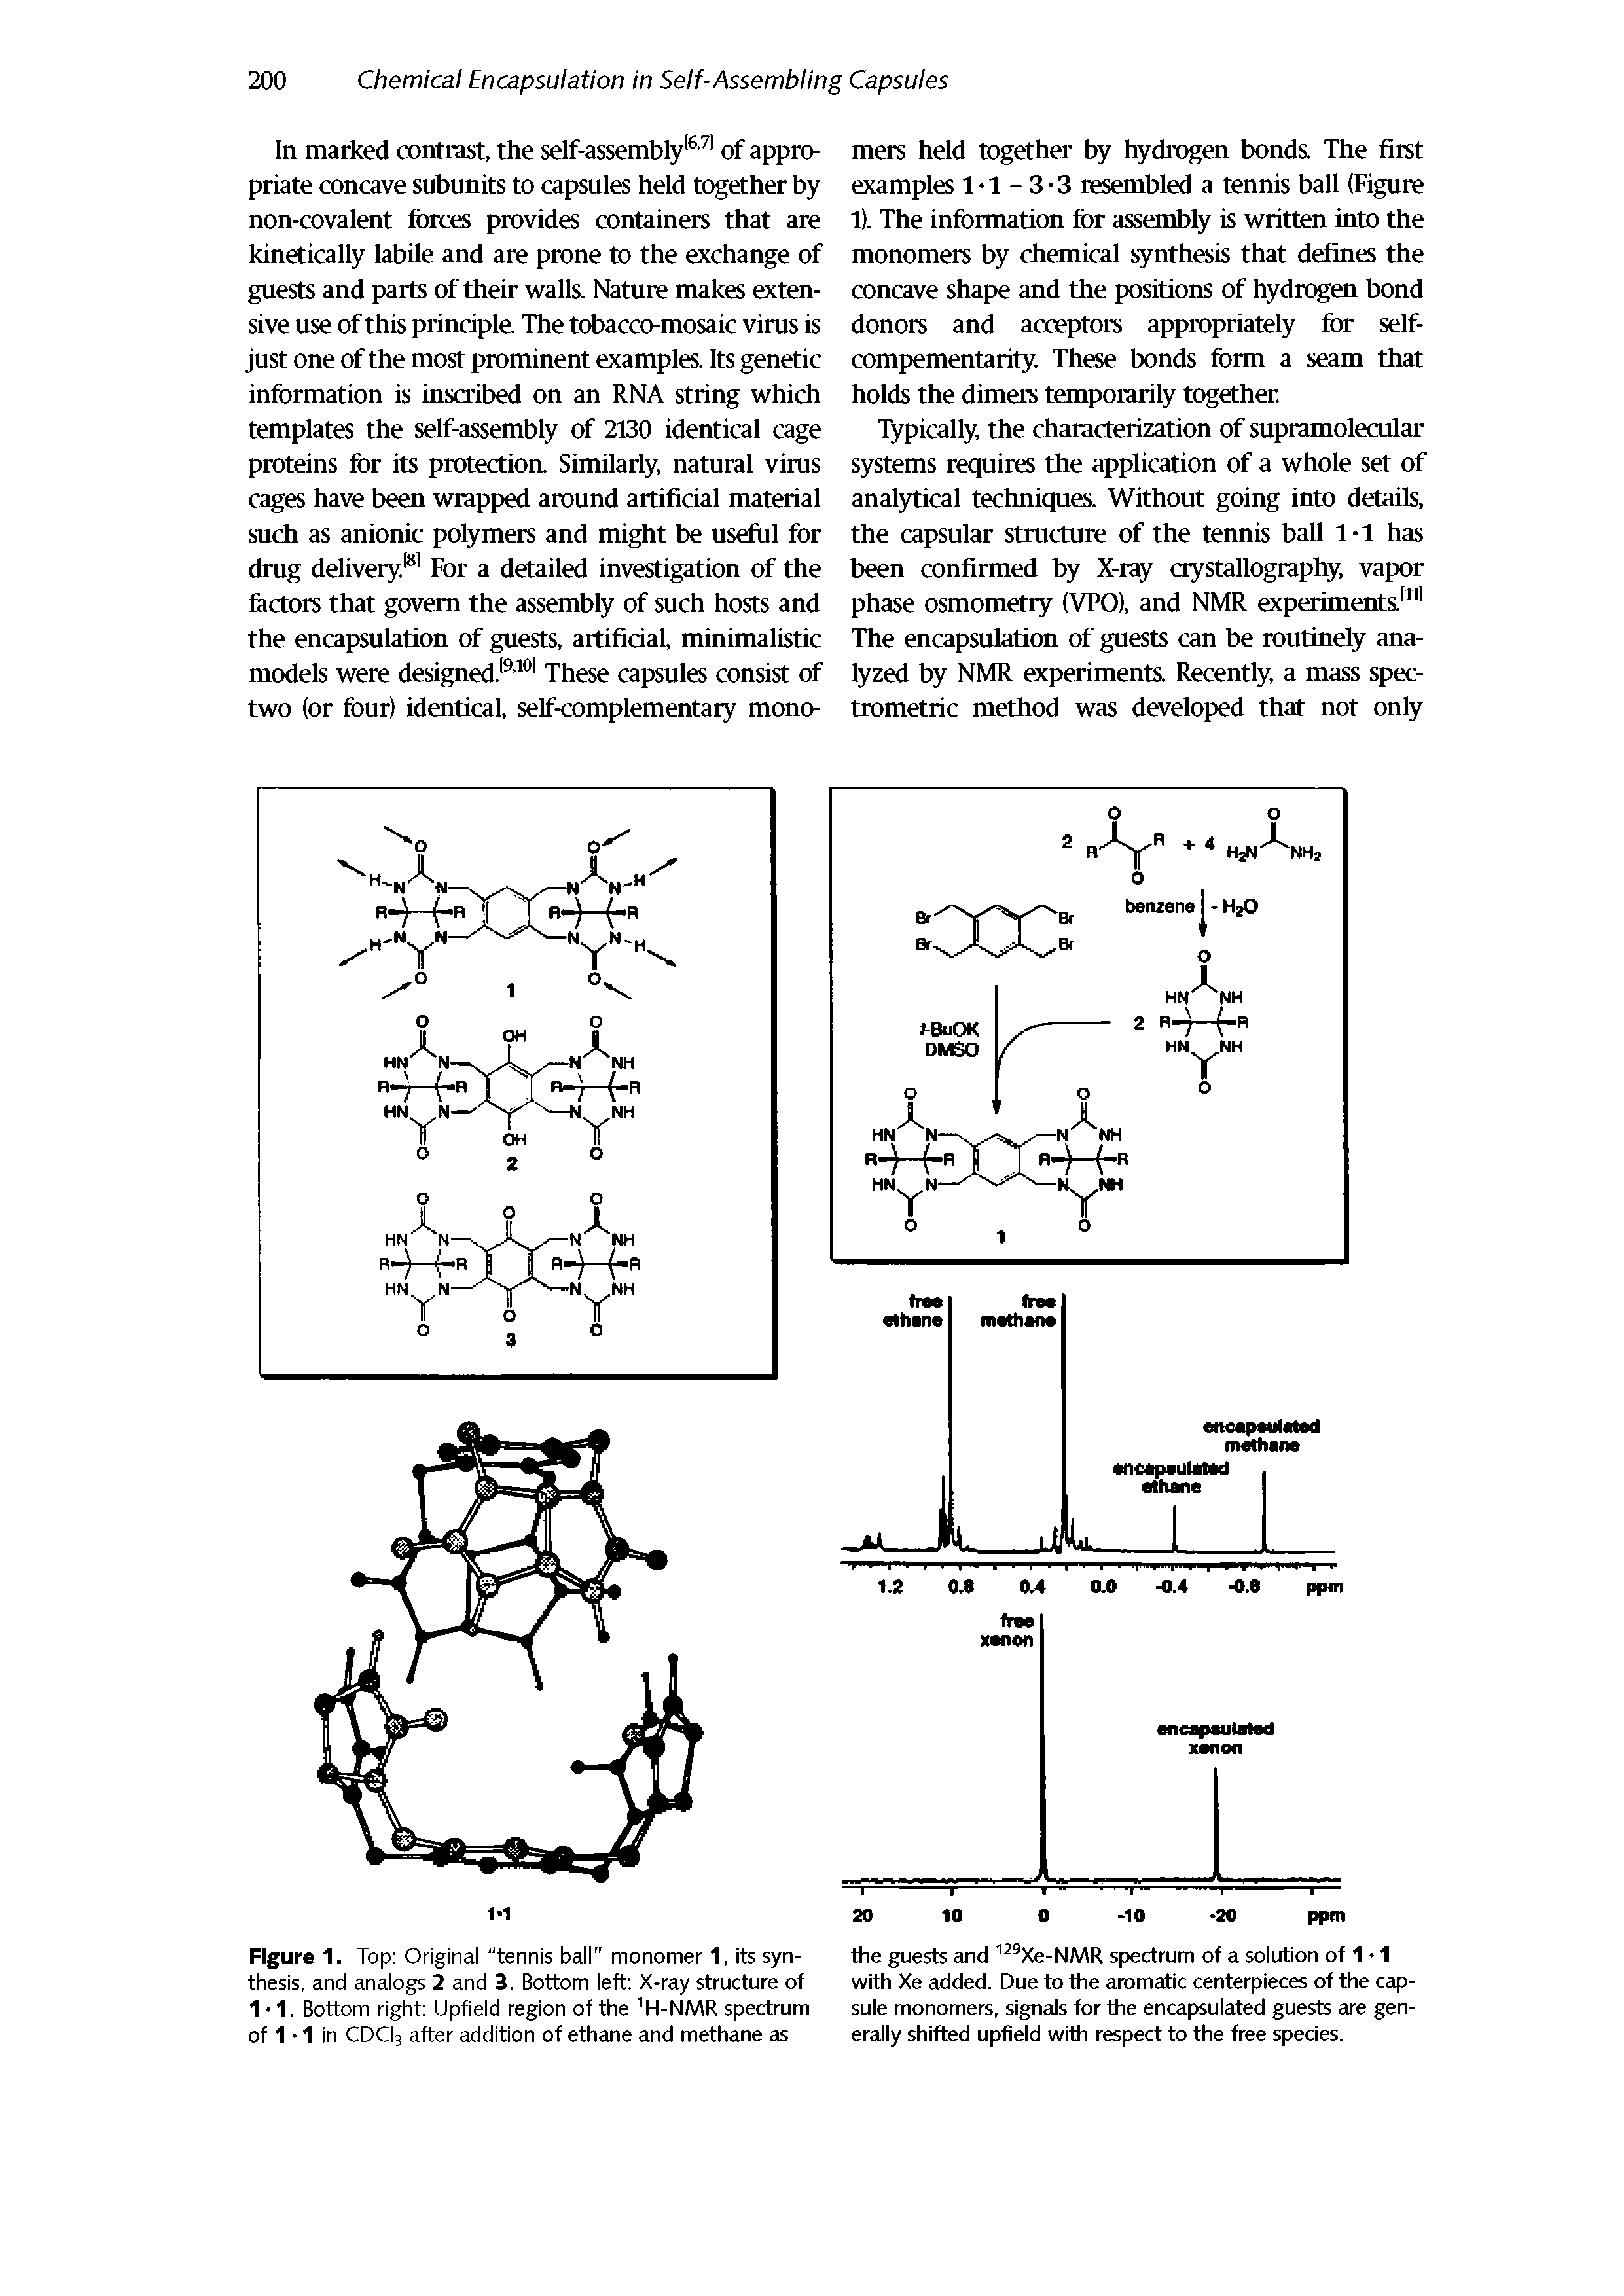 "Figure 1. Top Original ""tennis ball"" monomer 1, its syn- the guests and 129Xe-NMR spectrum of a solution of 1 1 thesis, and analogs 2 and 3. Bottom left X-ray structure of with Xe added. Due to the aromatic centerpieces of the cap-..."